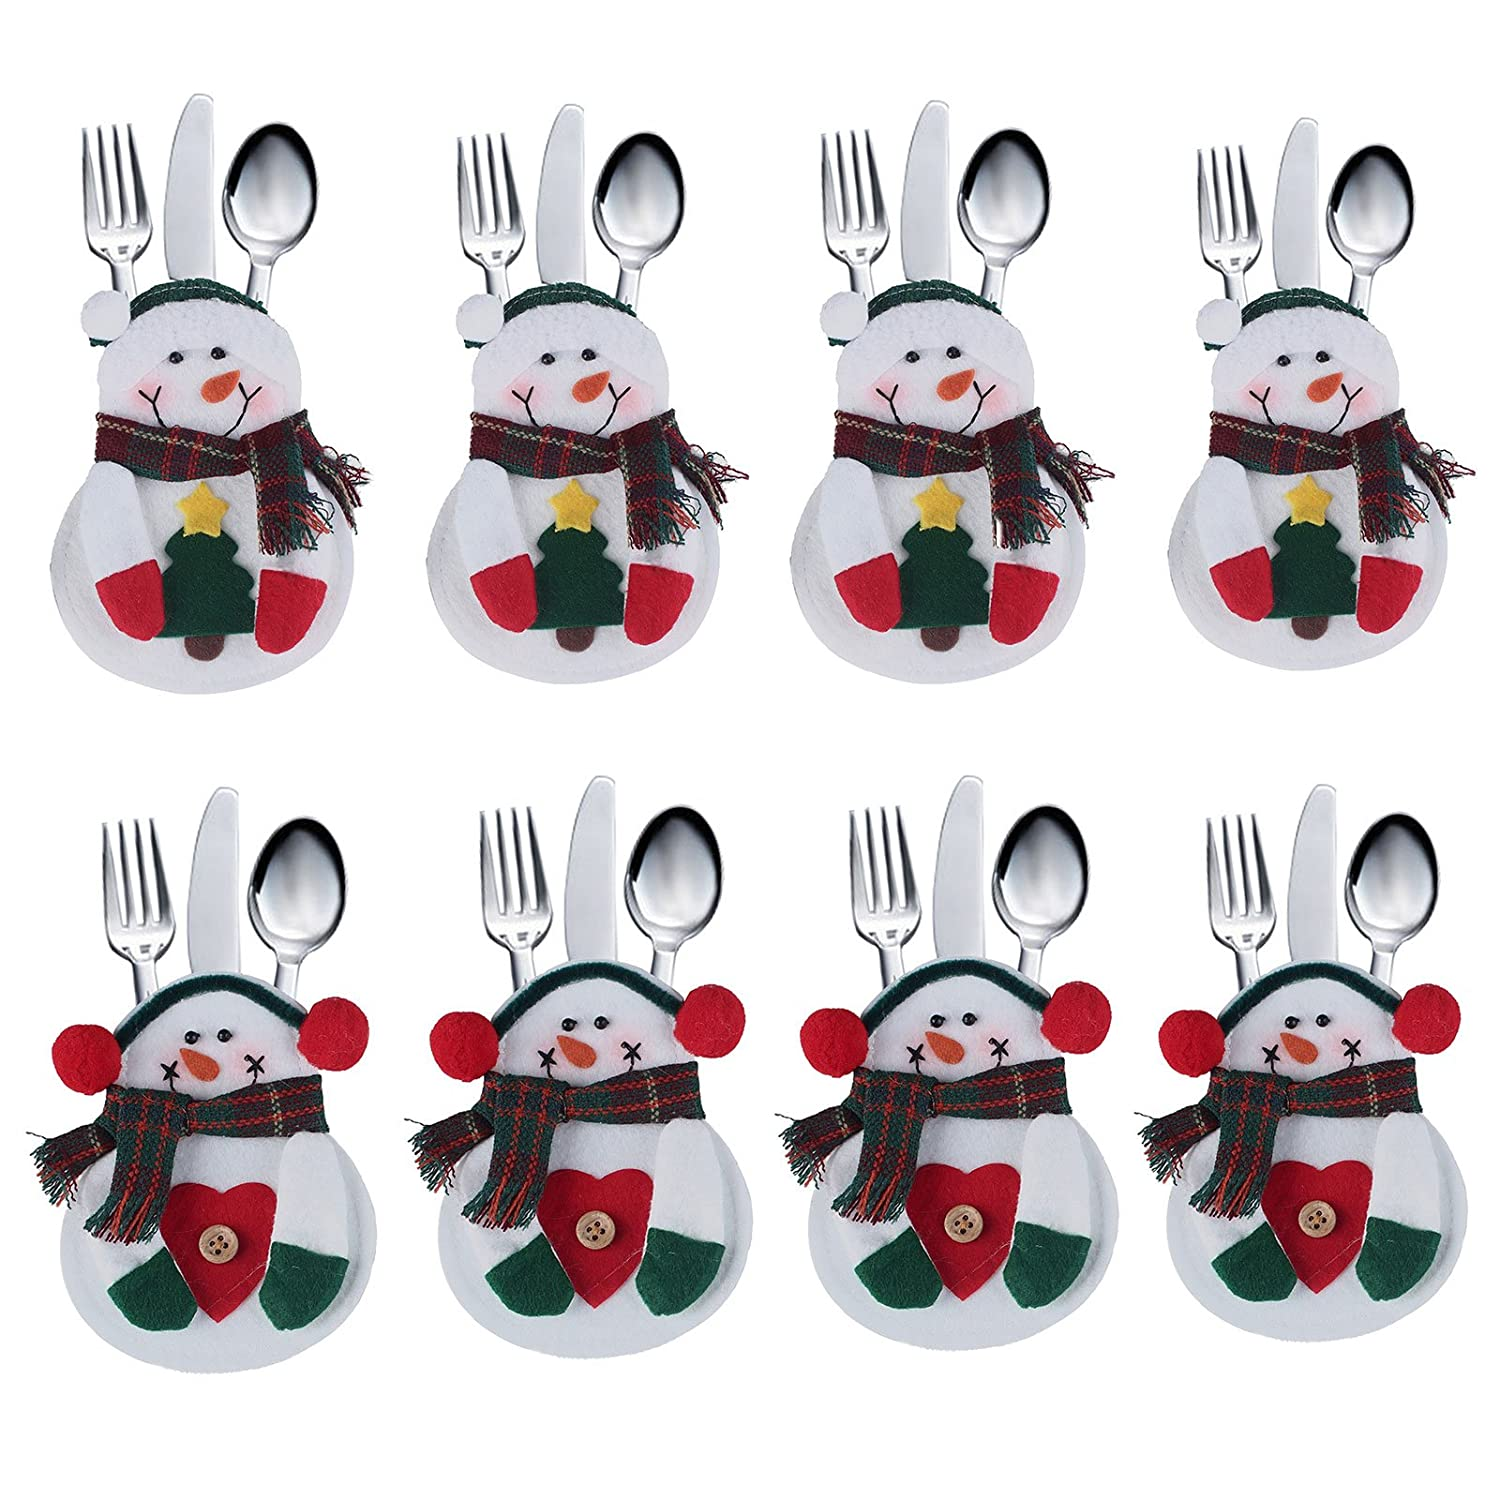 8pcs set Kitchen Cutlery Suit Silverware Holders Pockets Knifes Forks Bag Snowman Shaped Christmas Party Decoration D¨¦cor RICISUNG As Mentioned